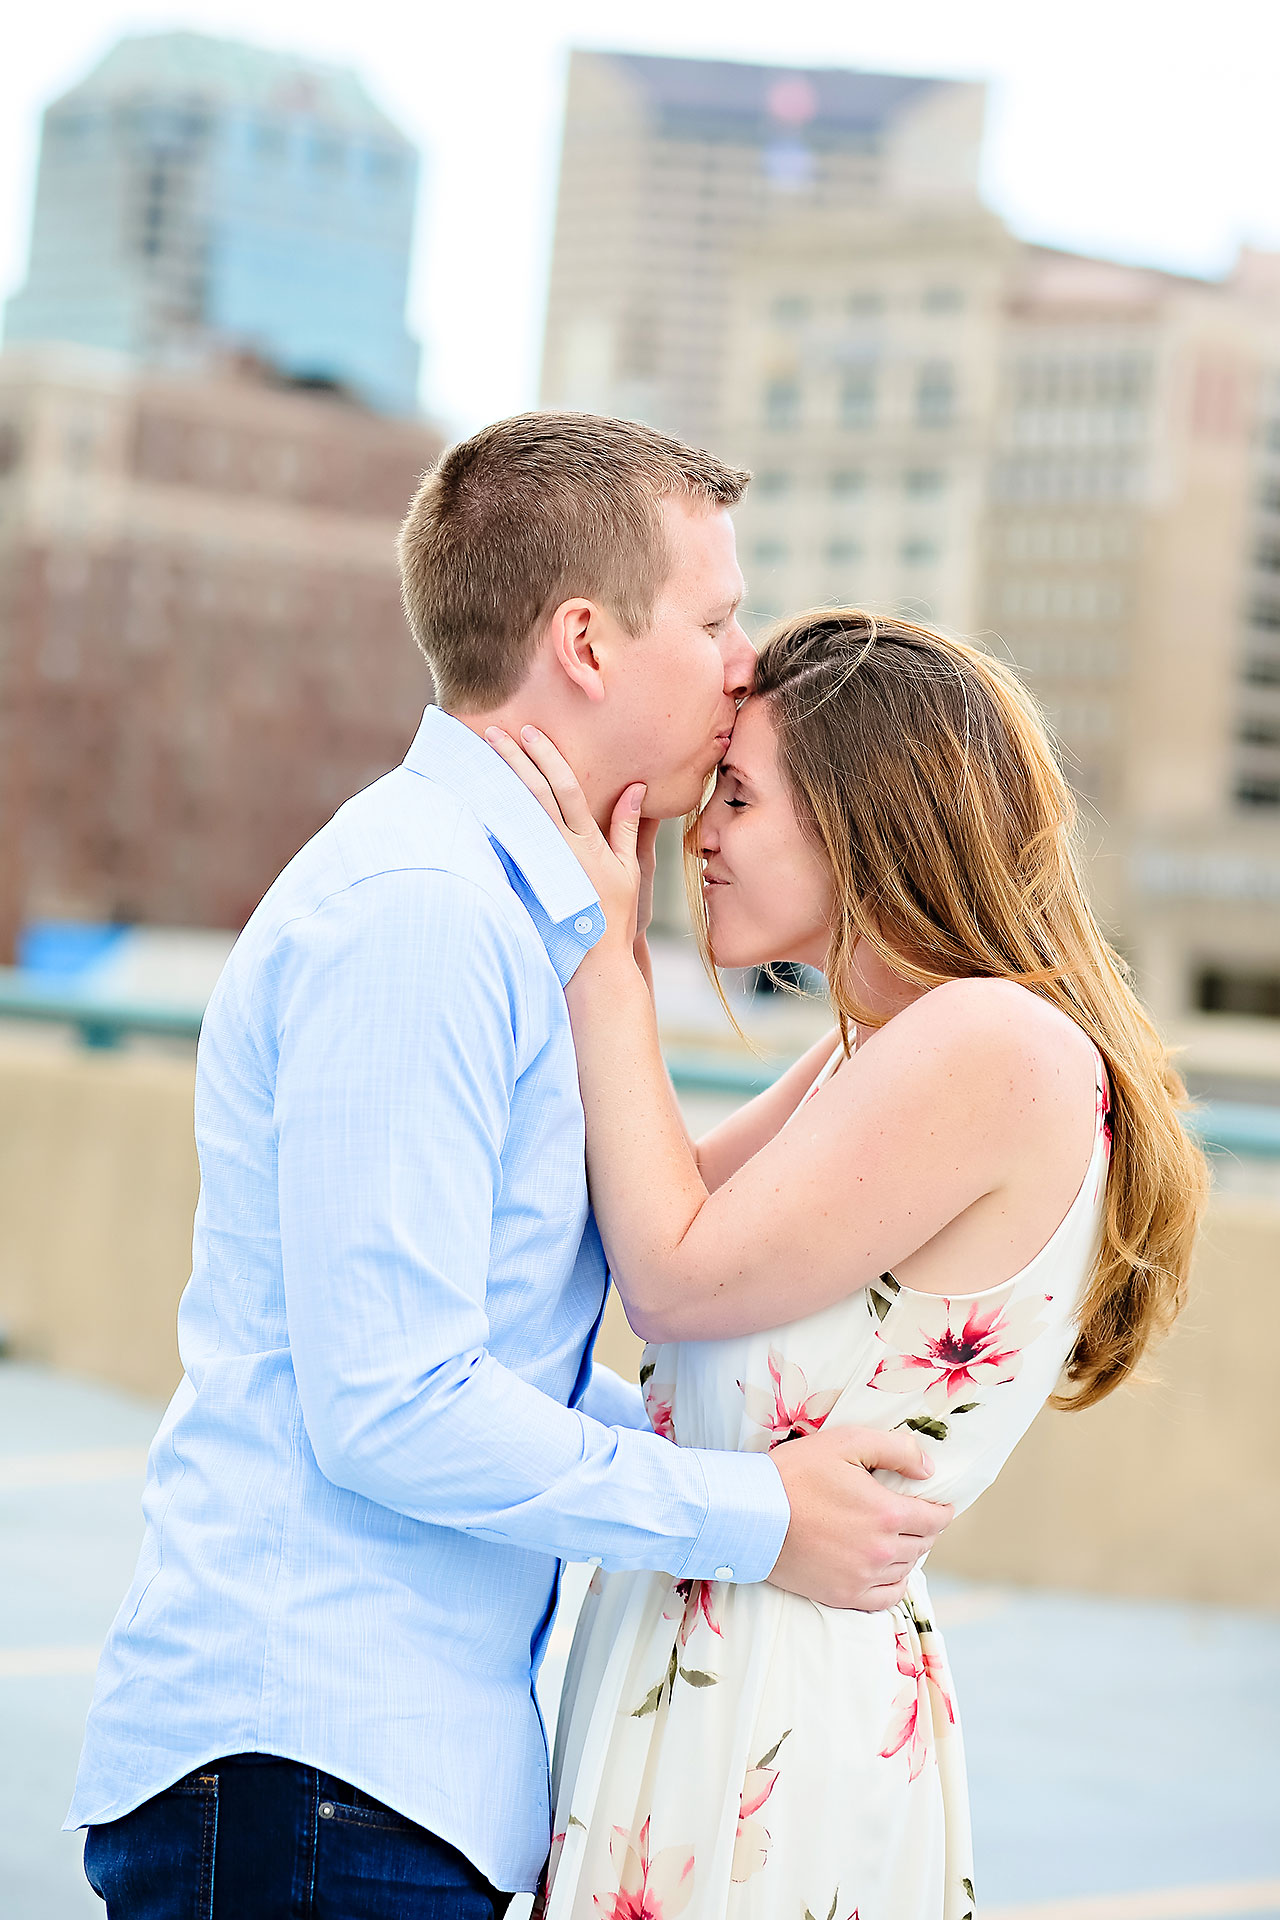 Chelsea Jeff Downtown Indy Engagement Session 138